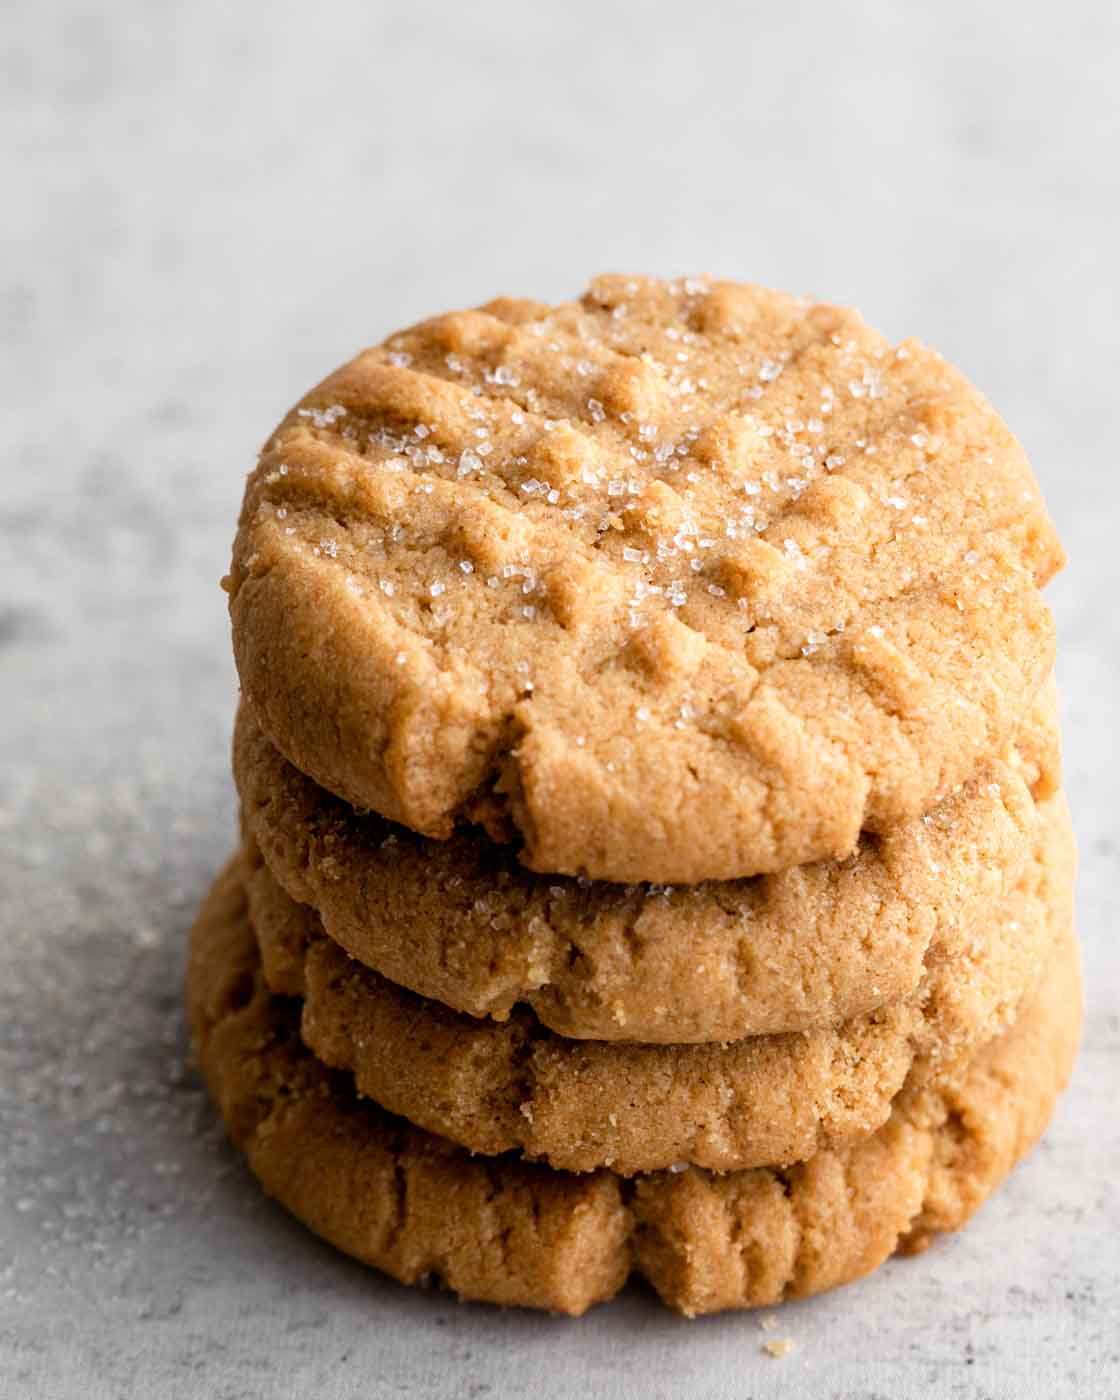 Gluten-Free, Grain-Free Peanut Butter Cookies Recipe